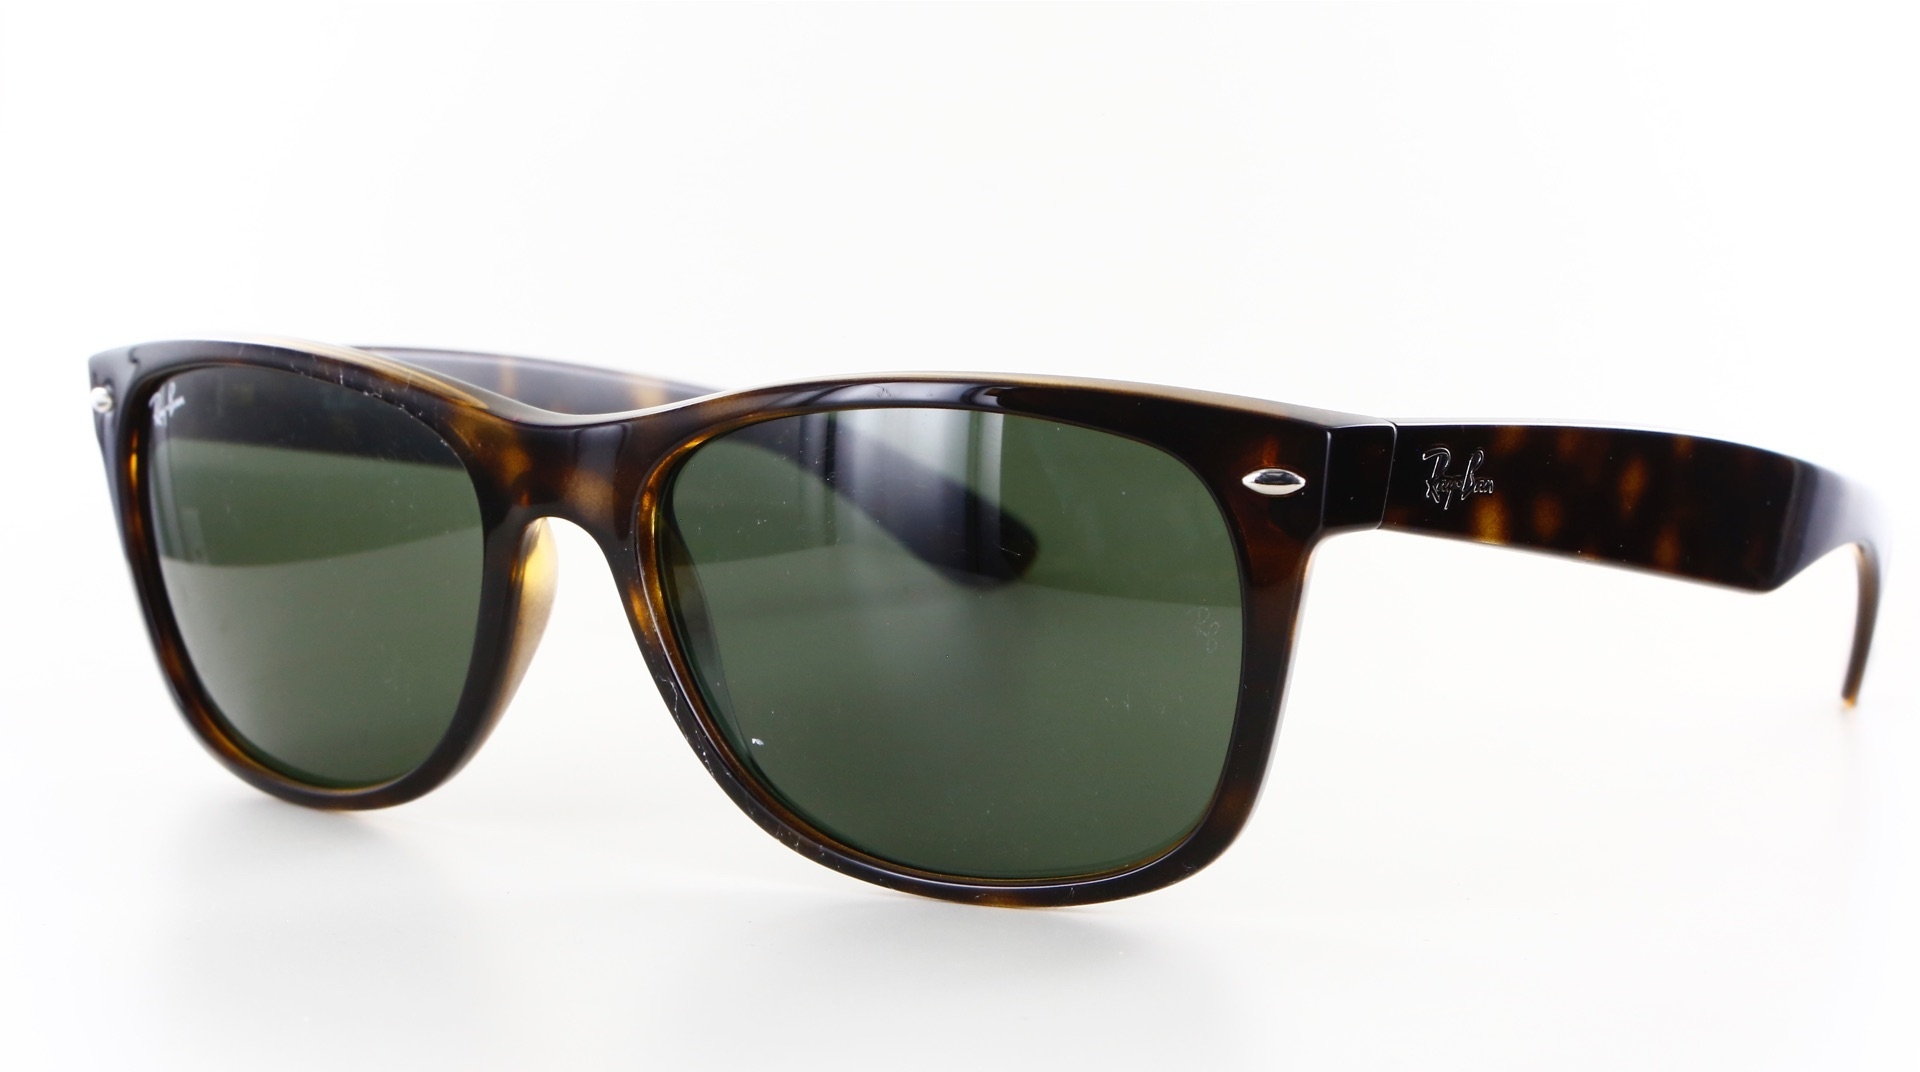 Ray-Ban - ref: 48274